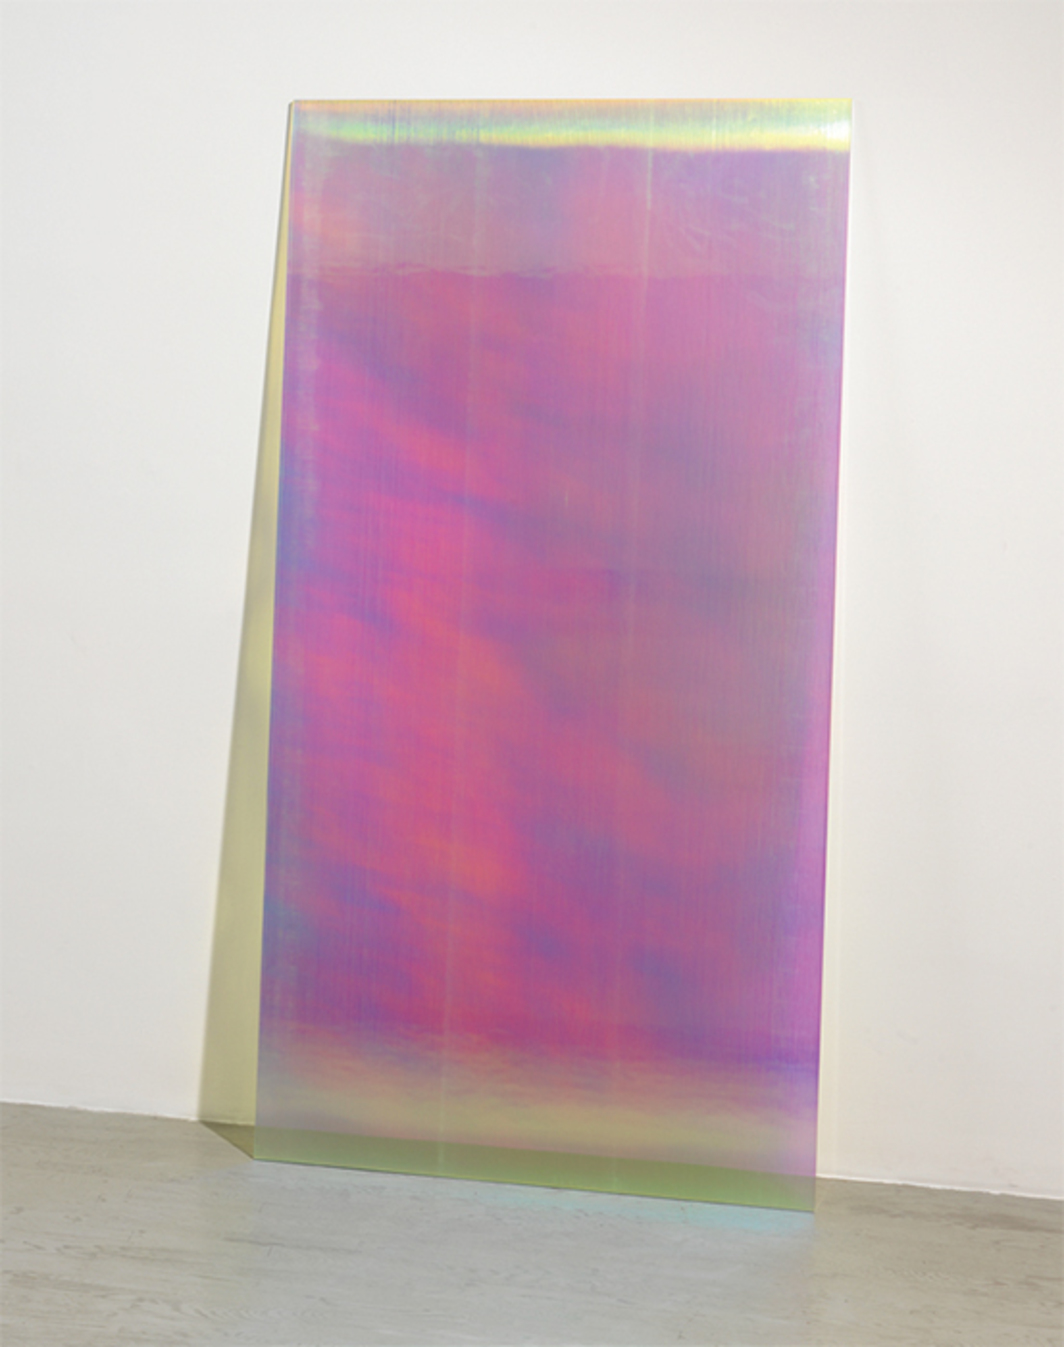 "Ann Veronica Janssens, CL9 Pink Shadow, 2015–16, annealed glass, PVC filter CL9, 82 5/8 × 41 3/8 × 6""."